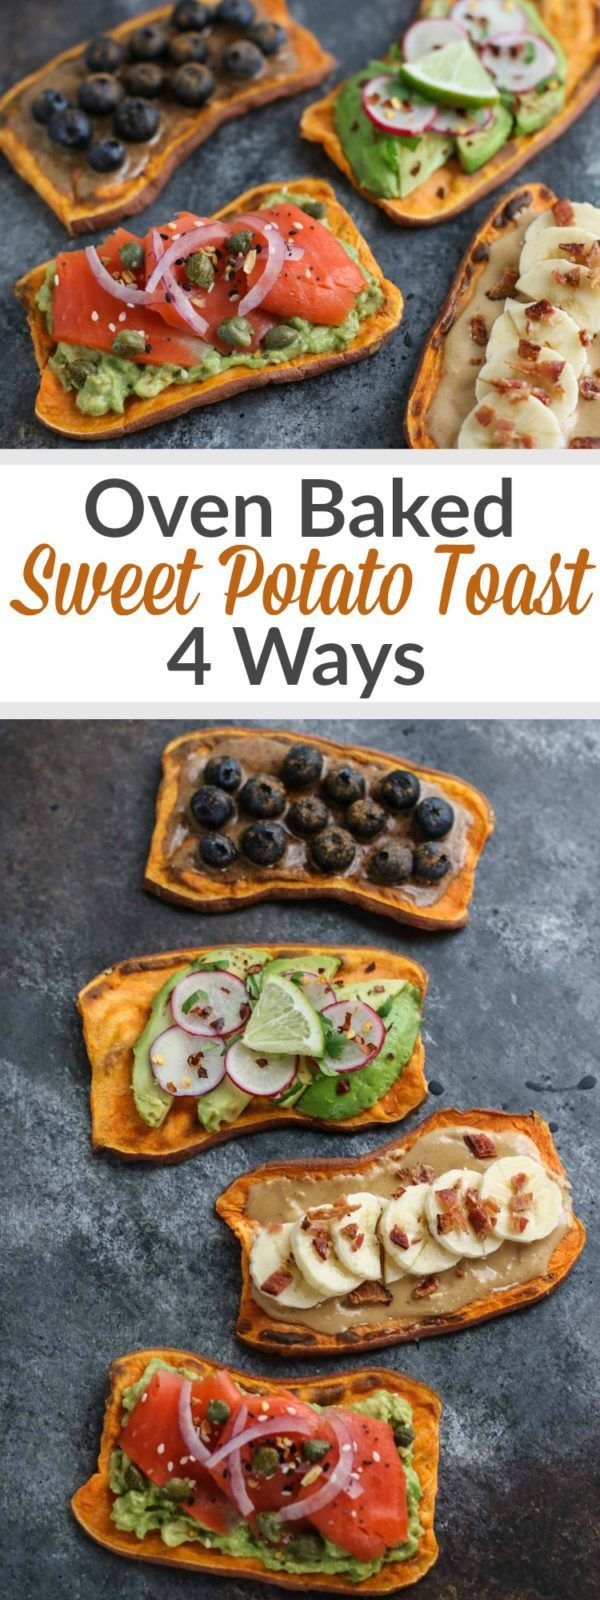 OVEN BAKED SWEET POTATO TOAST   If you've been missing toast because you've given up grains - Sweet Potato Toast is the answer to your breakfast prayers! In this recipe you par-bake the slabs of sweet potato so all they need is a quick trip through the toaster or toaster oven before they're ready to top with all the toppings you please.   http://therealfoodrds.com/oven-baked-sweet-potato-toast-4-ways/